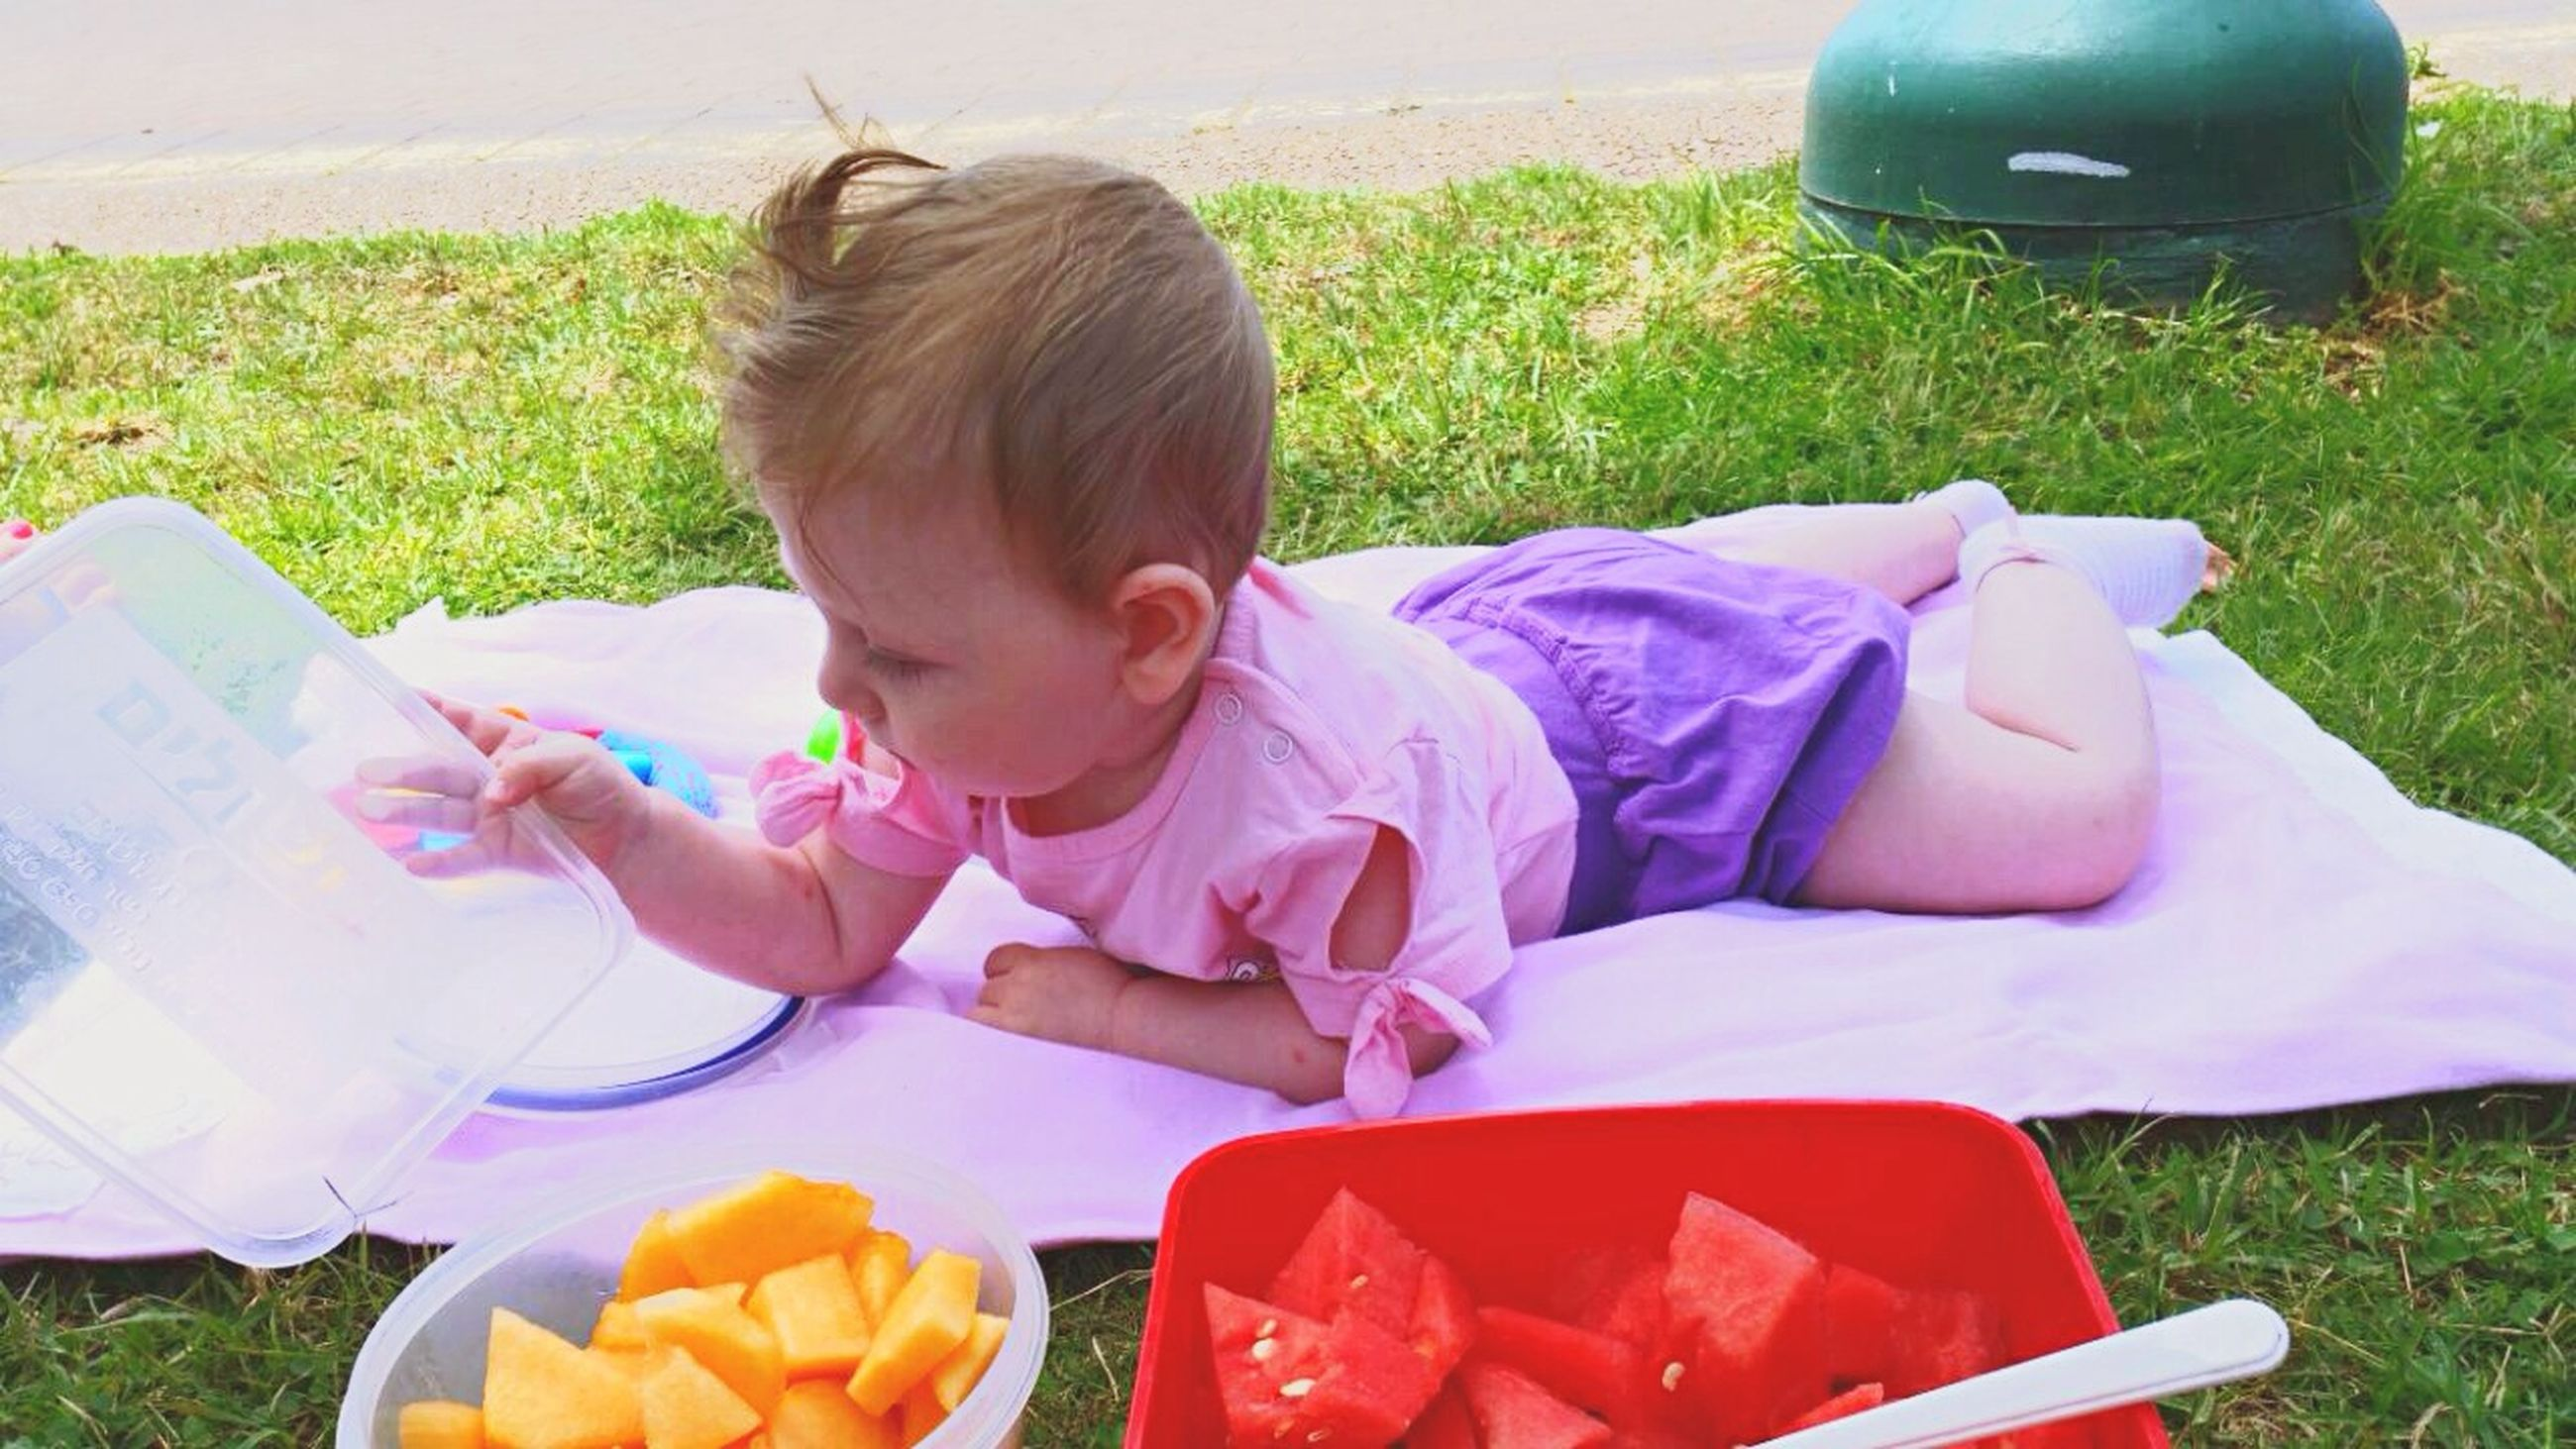 childhood, elementary age, innocence, cute, holding, girls, grass, person, leisure activity, high angle view, lifestyles, boys, food and drink, sitting, toy, casual clothing, freshness, toddler